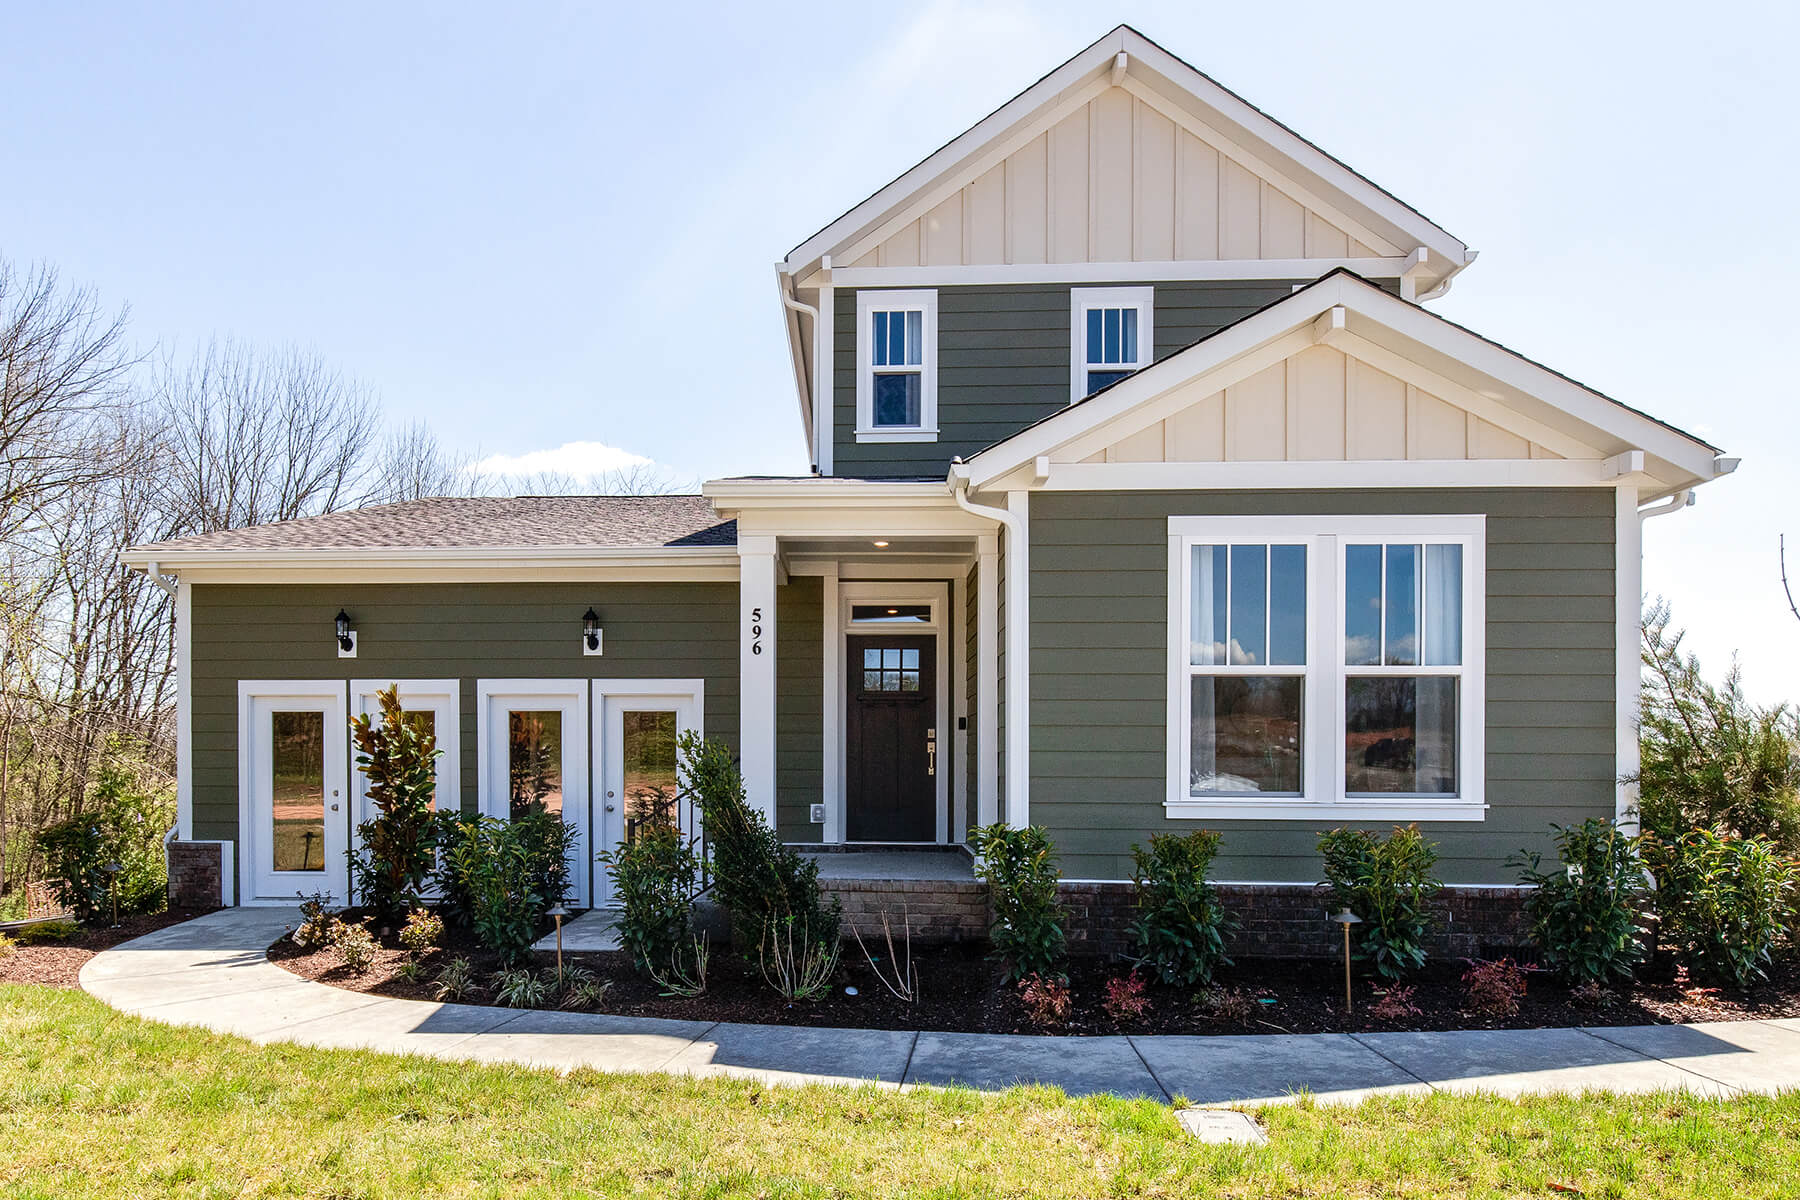 50' Lots by Lennar - Durham Farms New Homes for Sale in Hendersonville, TN